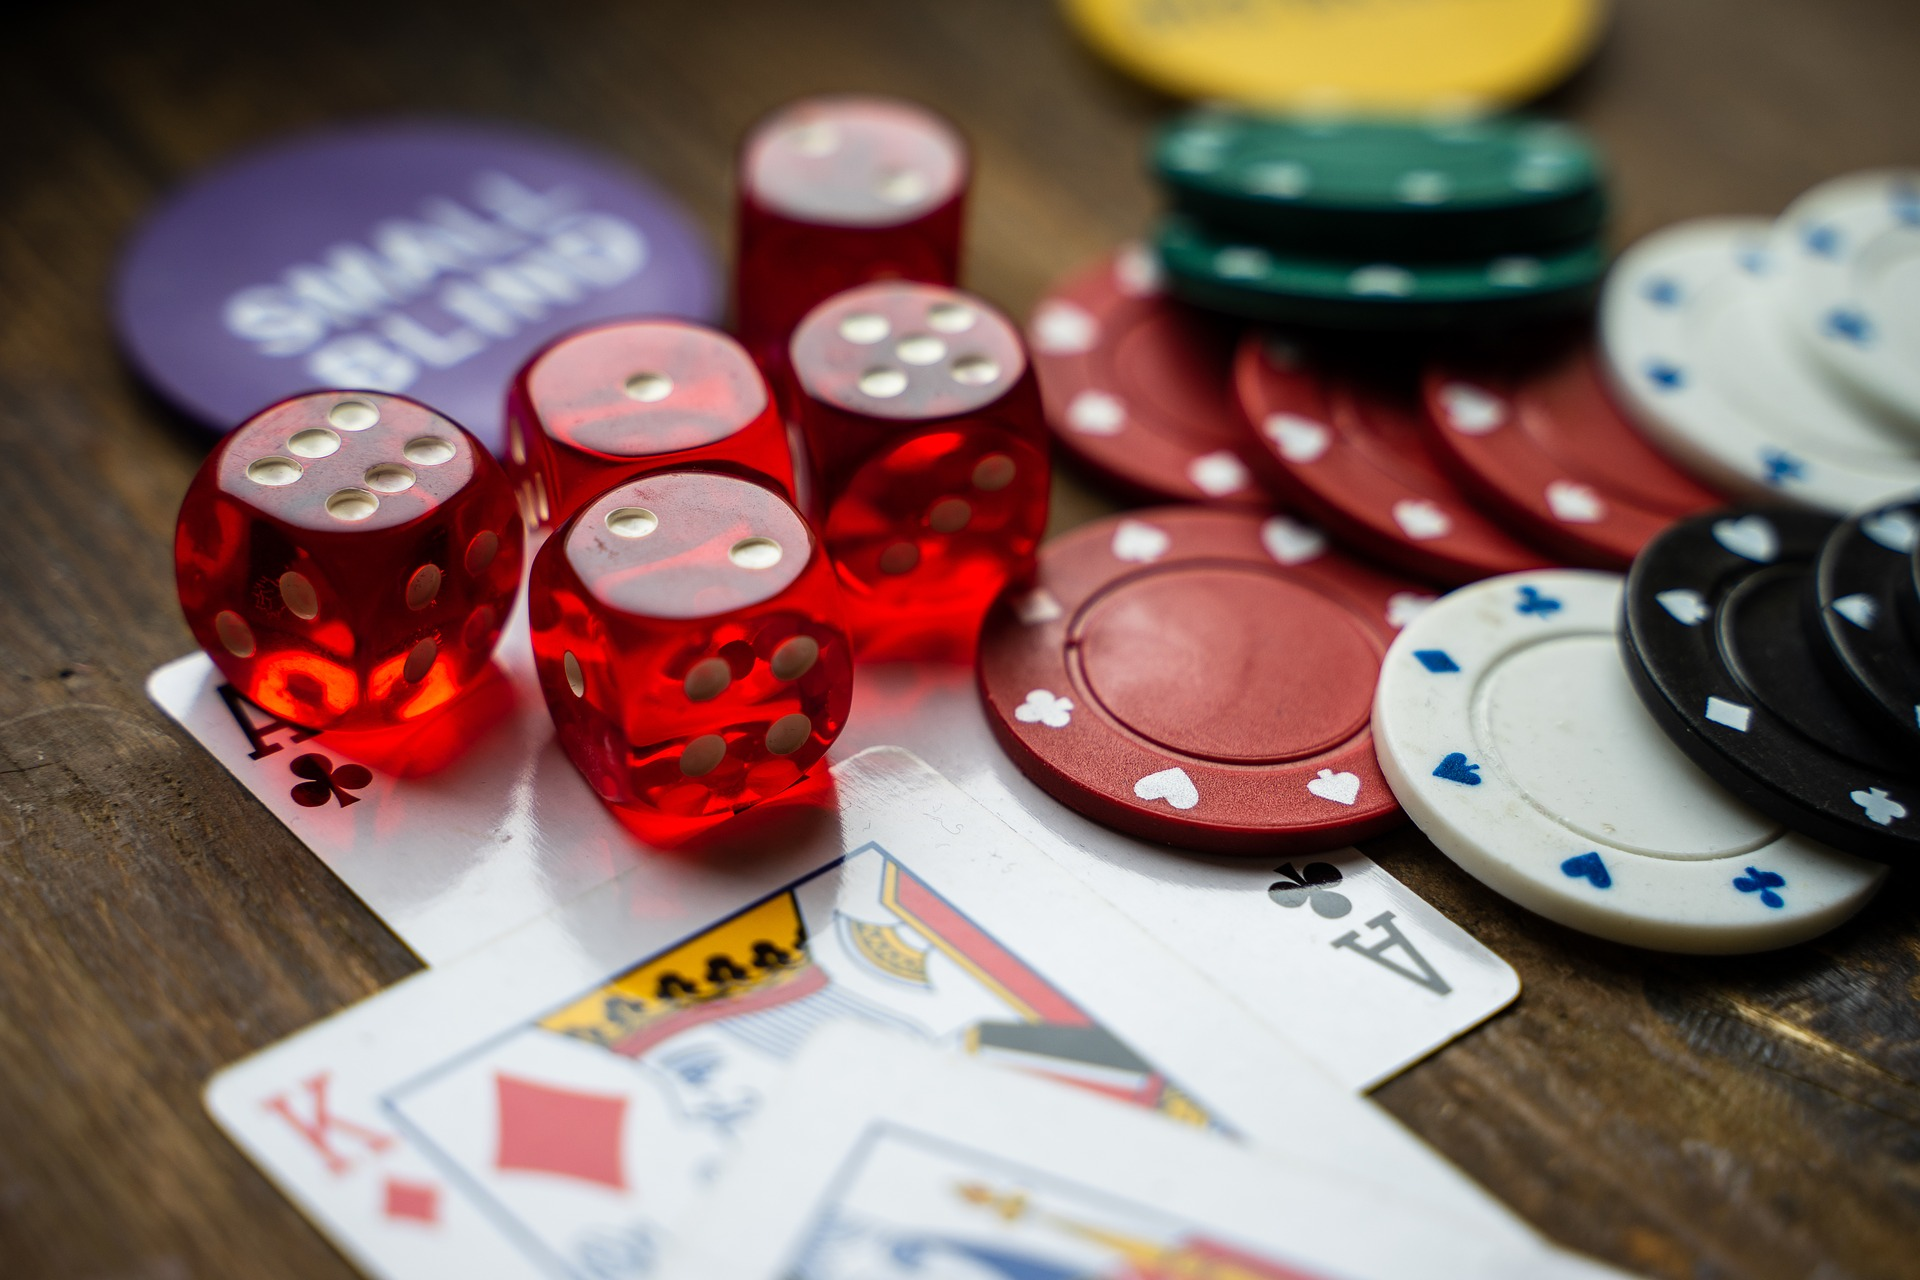 Finding The Online Casino That's Right For You